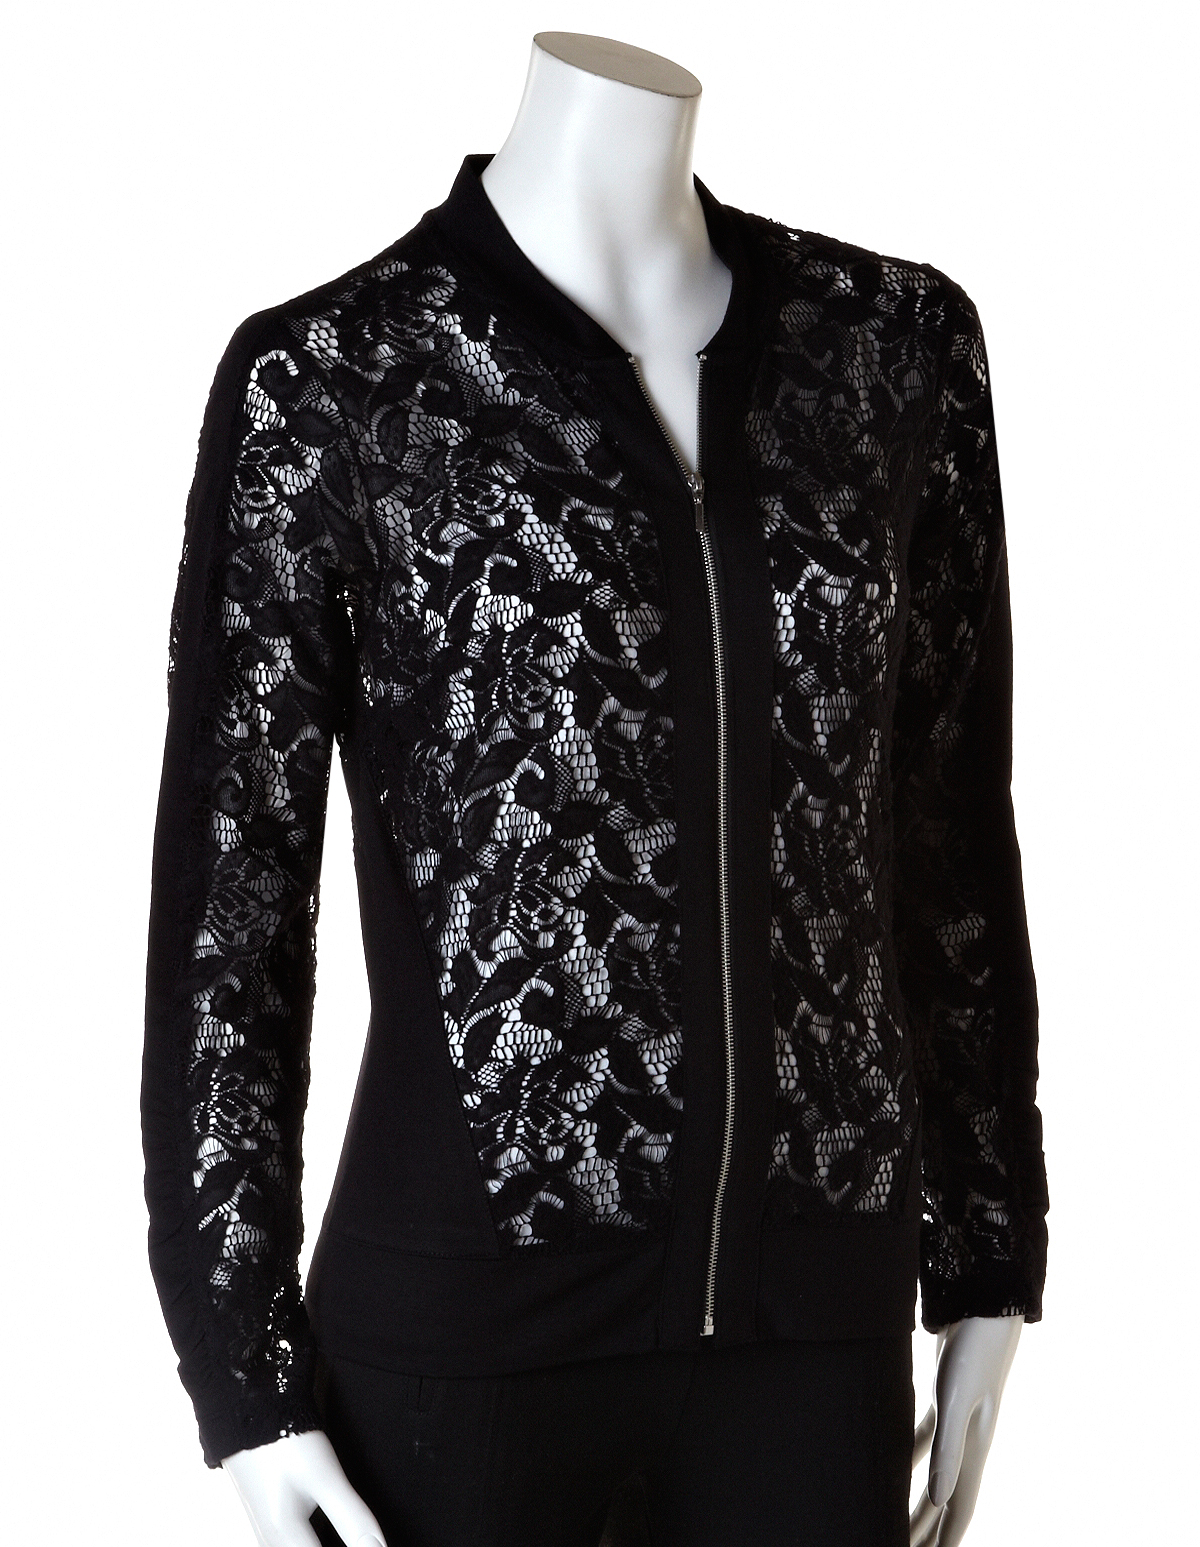 Buy the latest black lace coat cheap shop fashion style with free shipping, and check out our daily updated new arrival black lace coat at tanzaniasafarisorvicos.ga